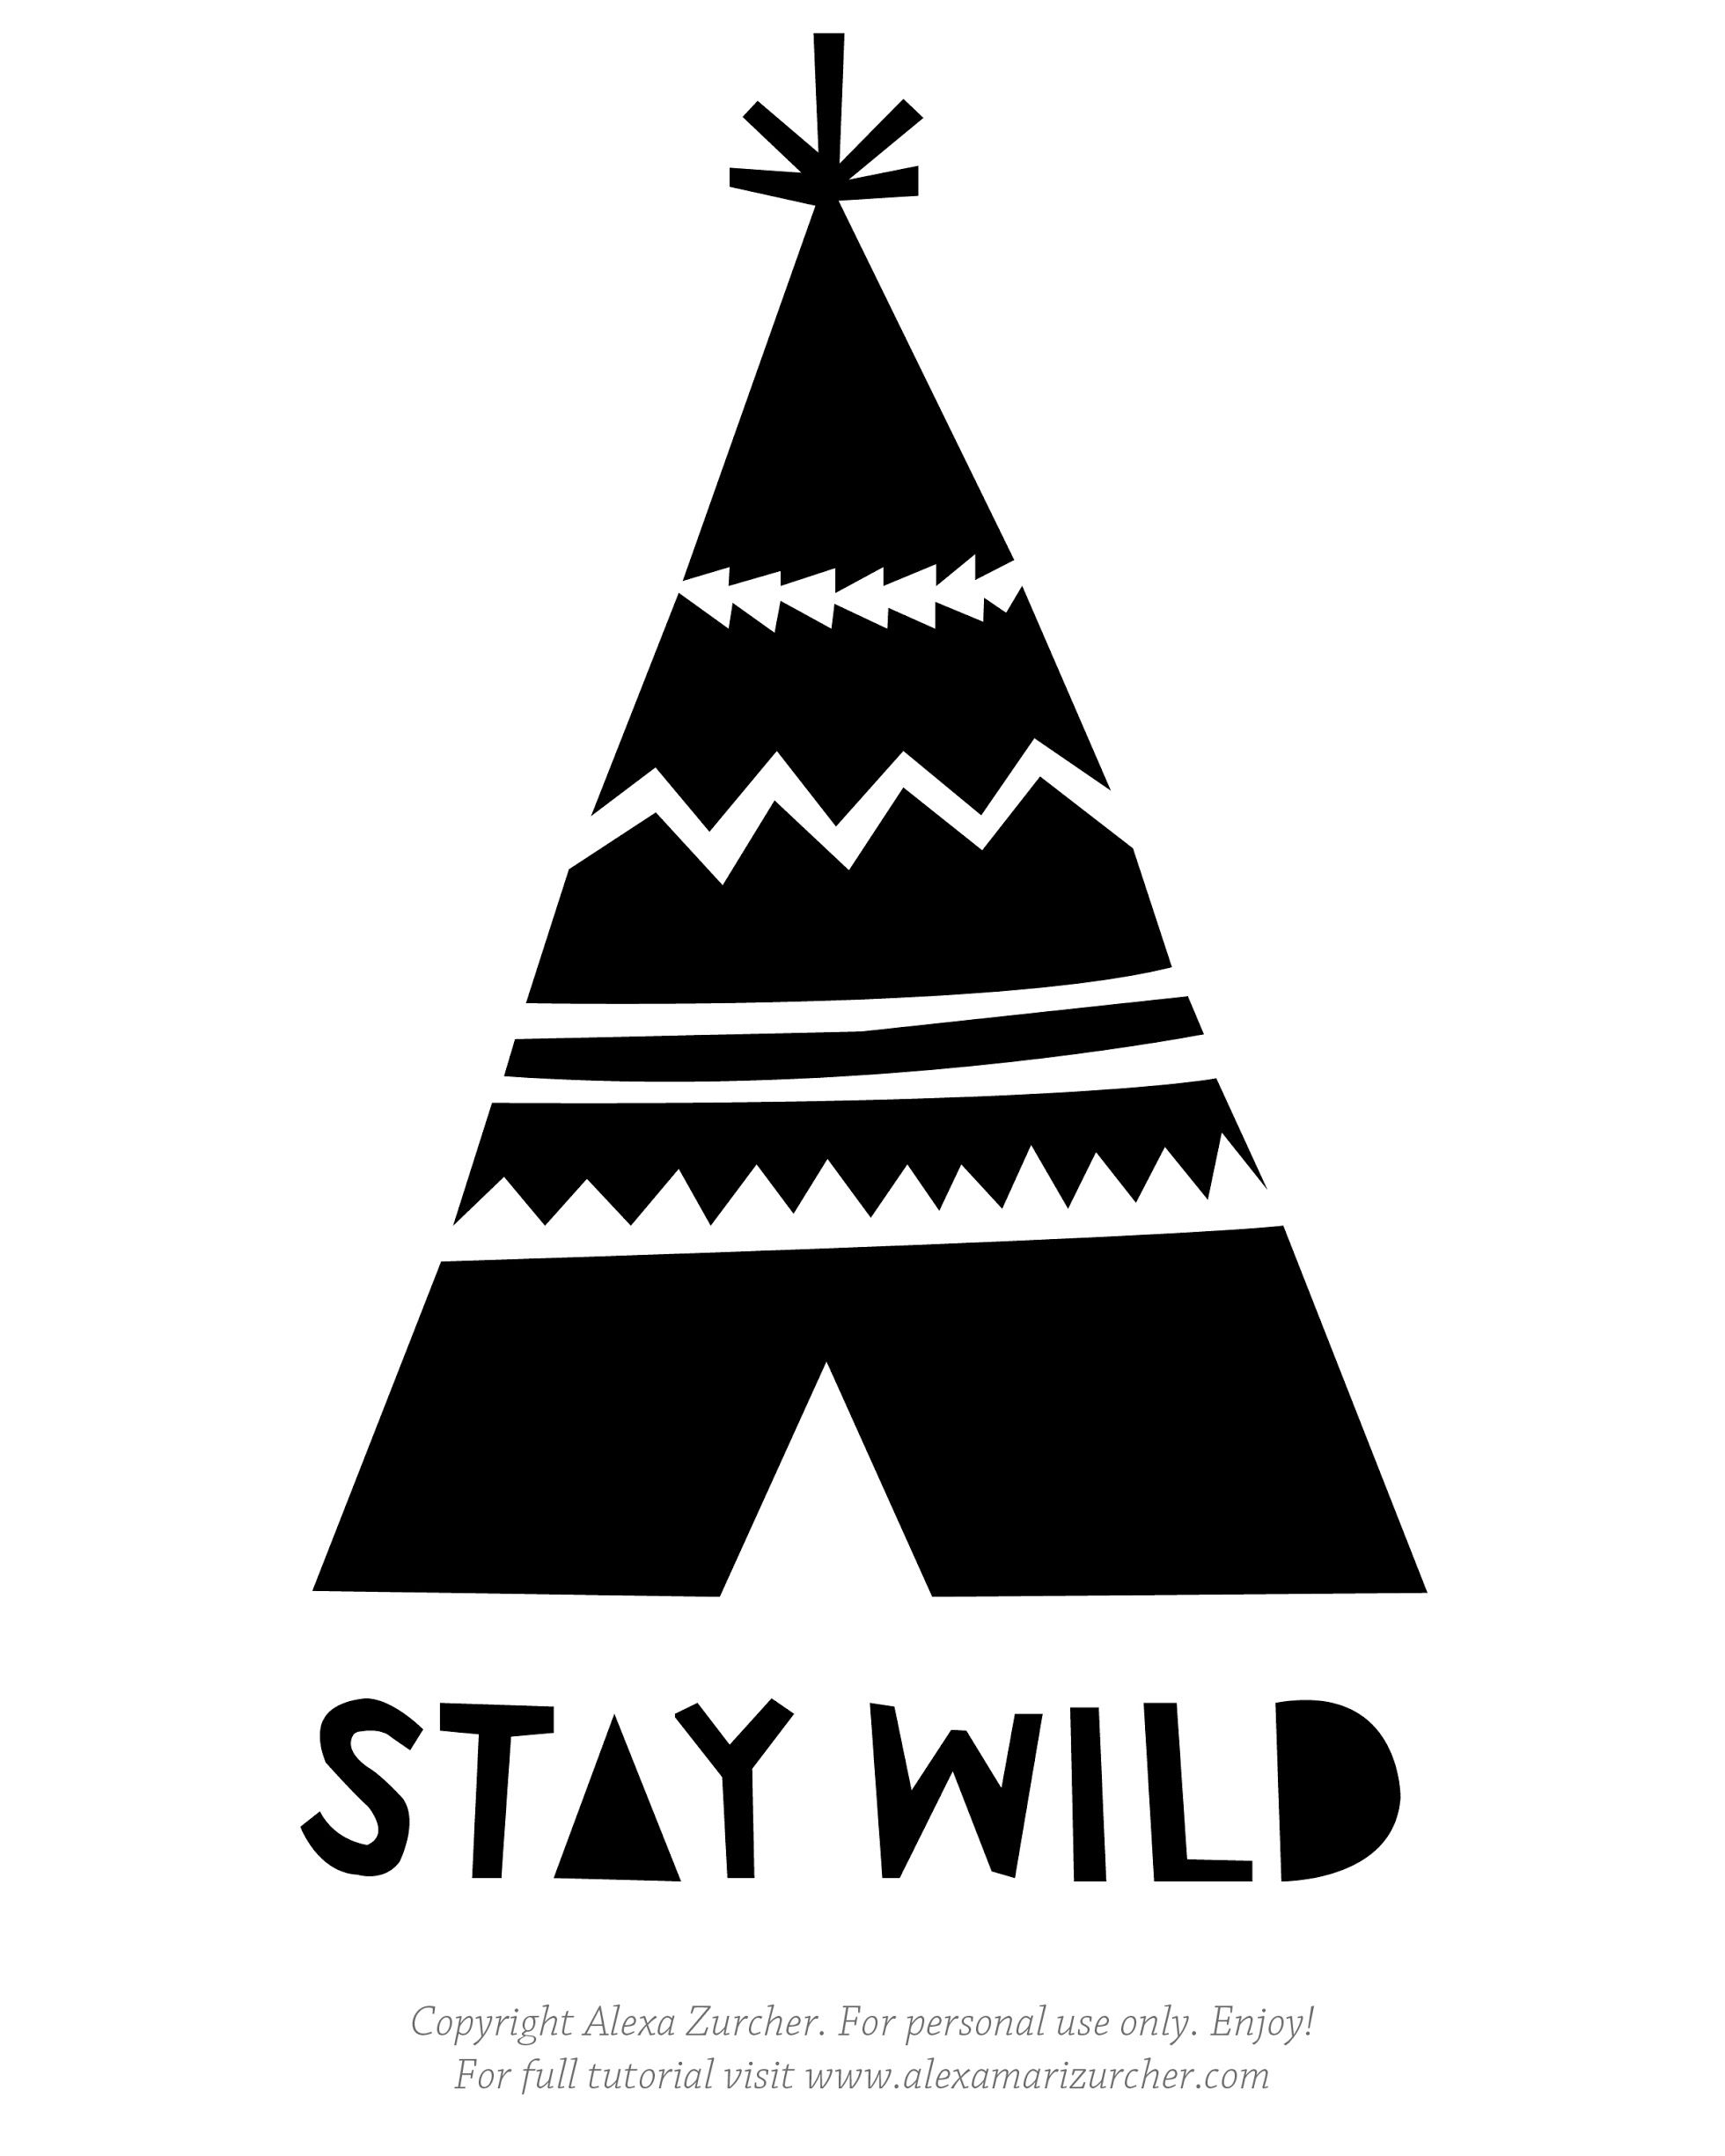 Displaying Stay Wild Stencil